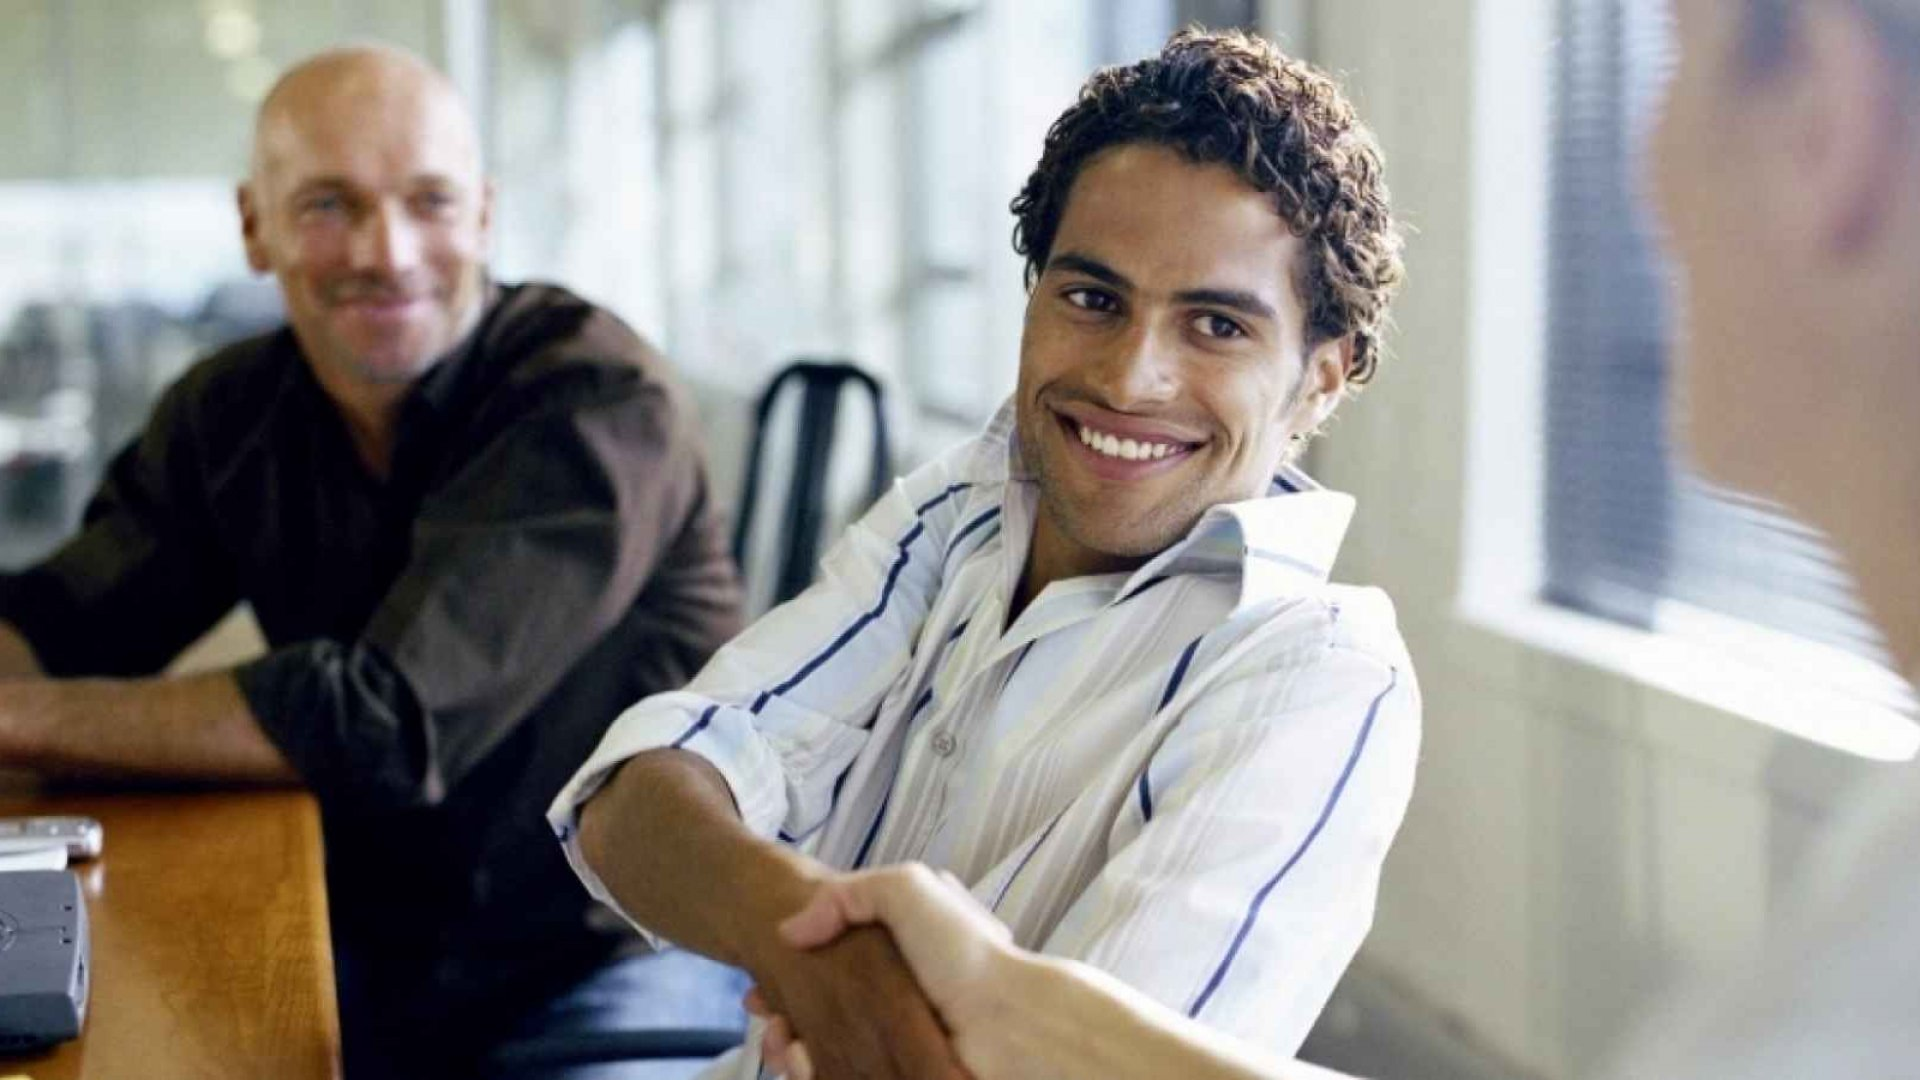 5 Tips for Making the Friend/Business Partner Dynamic Work